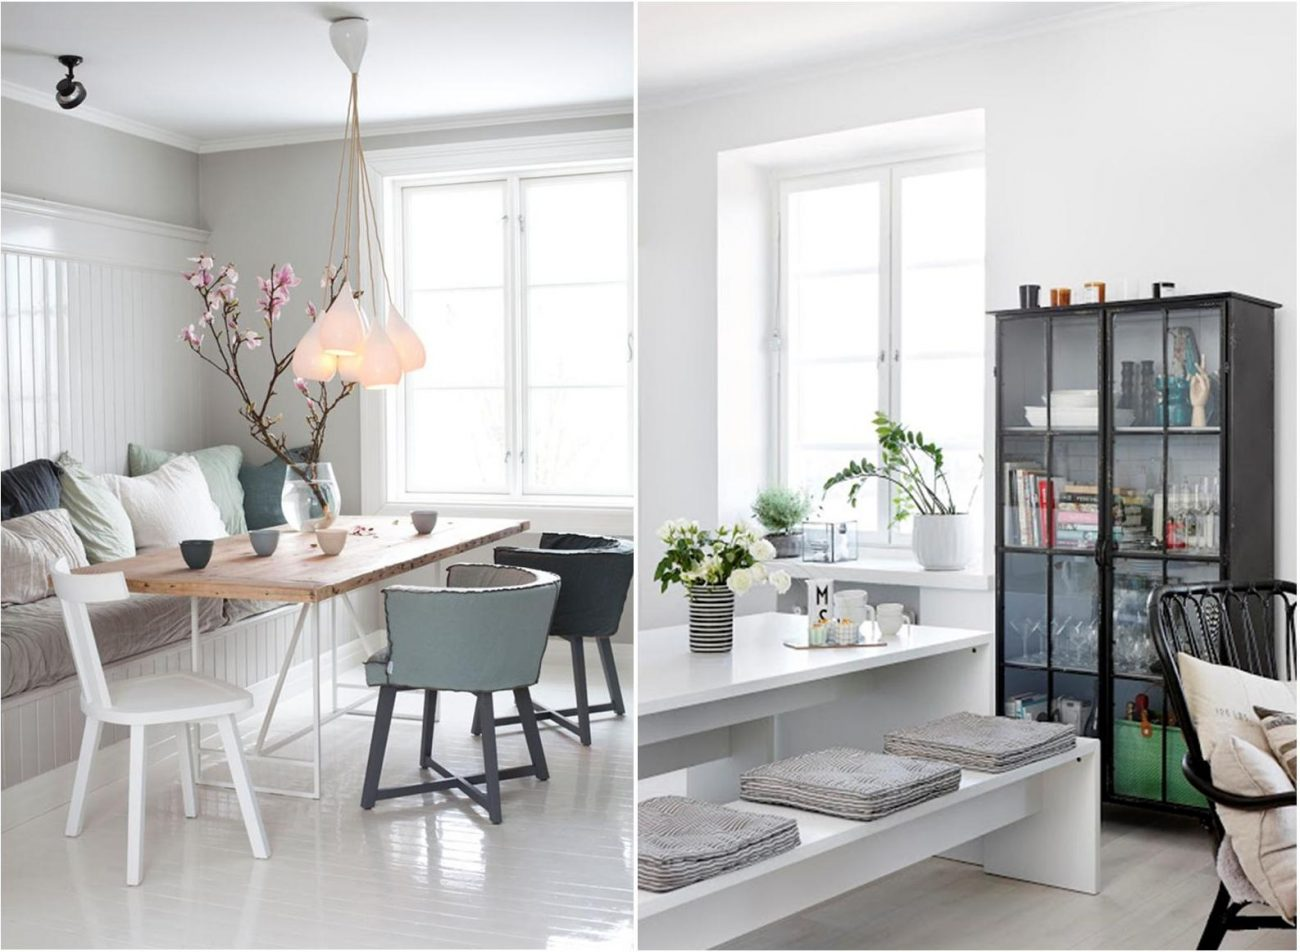 5 Home Décor Styles To Consider When Redesigning Your Home • Home Tips